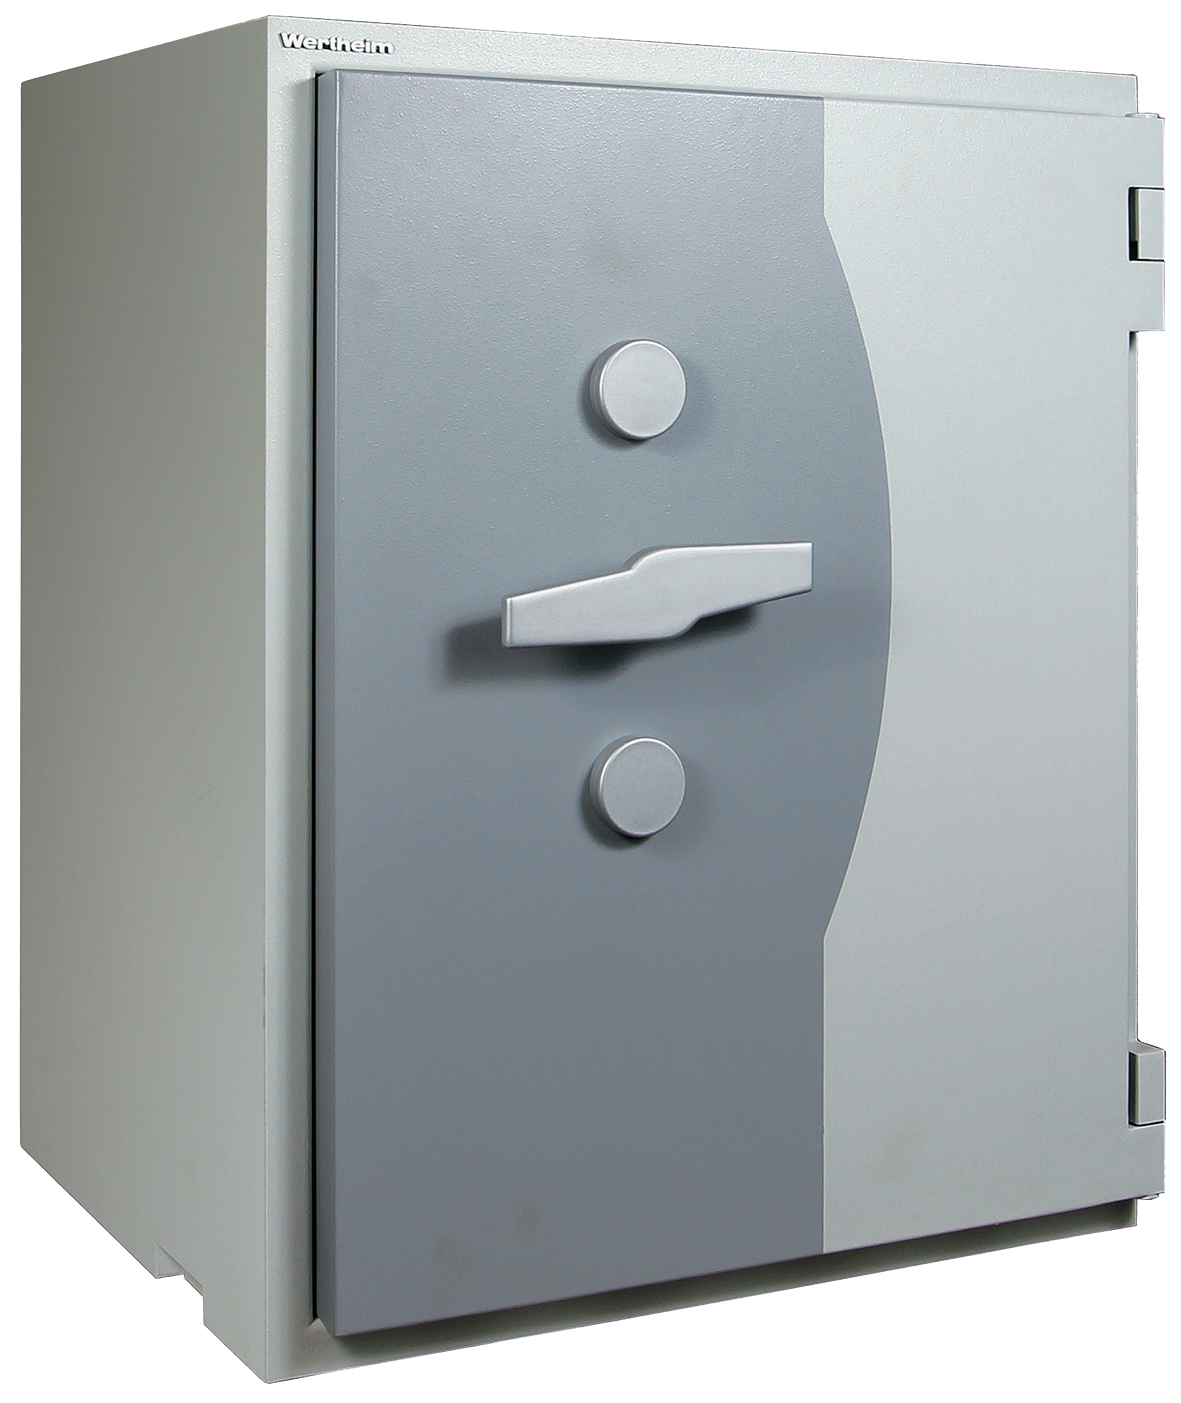 Wertheim Home Safes EWS0849KBR